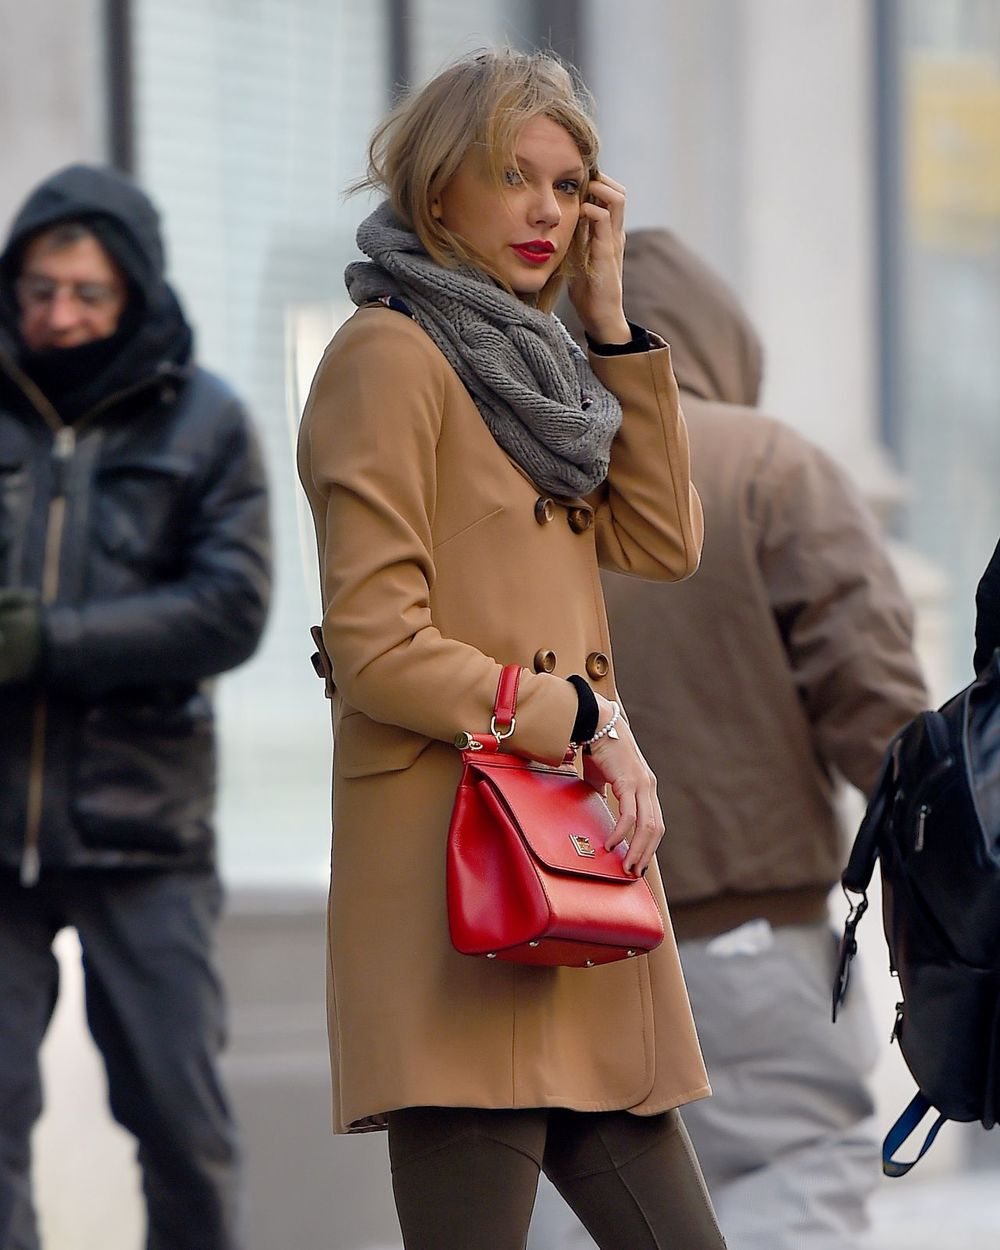 taylor-swift-style-out-in-nyc-february-2015_1.jpg